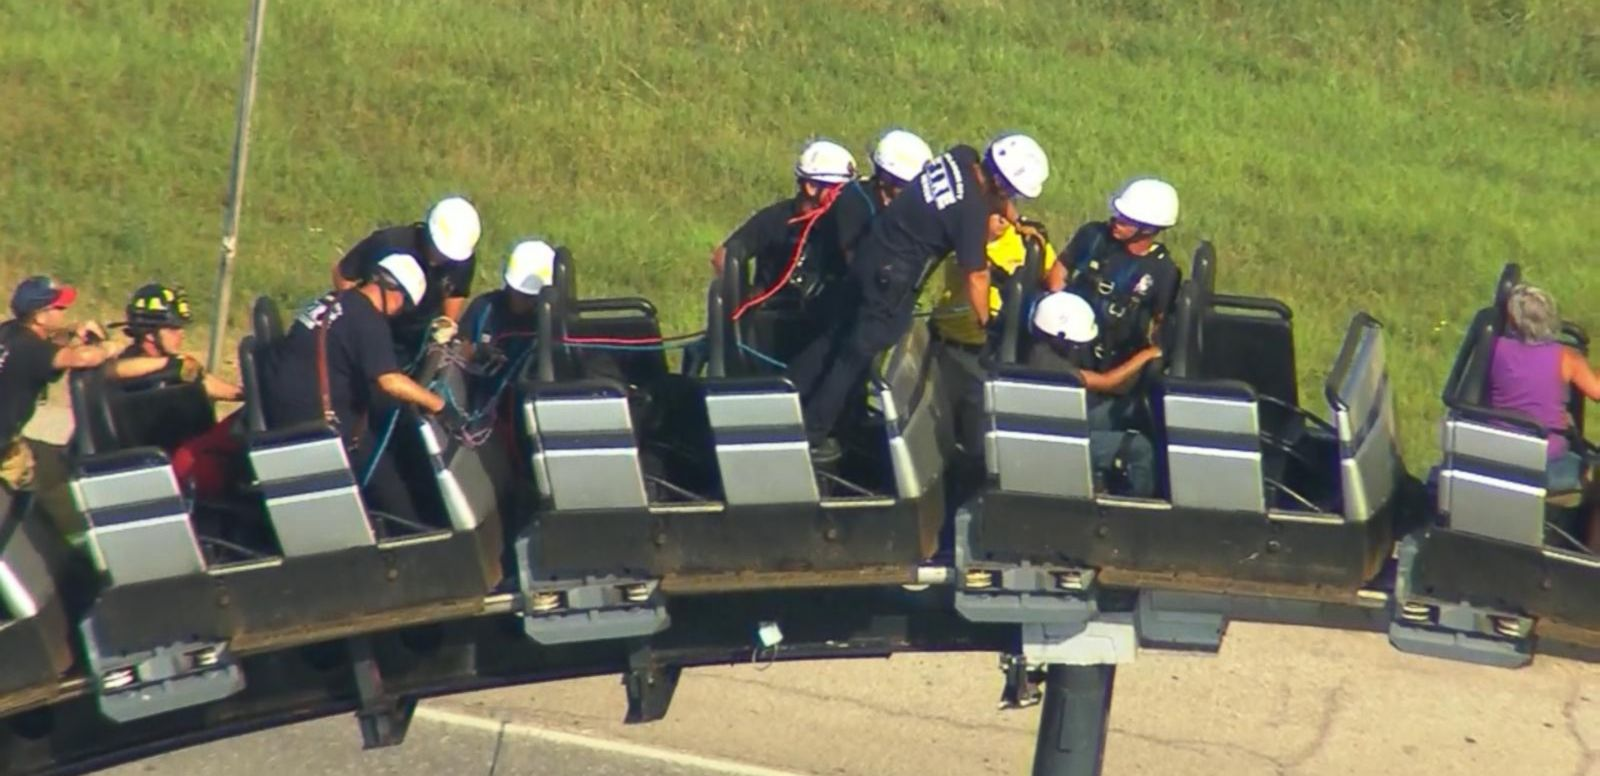 VIDEO: 8 People Stuck on Oklahoma Roller Coaster 100 Feet Off Ground